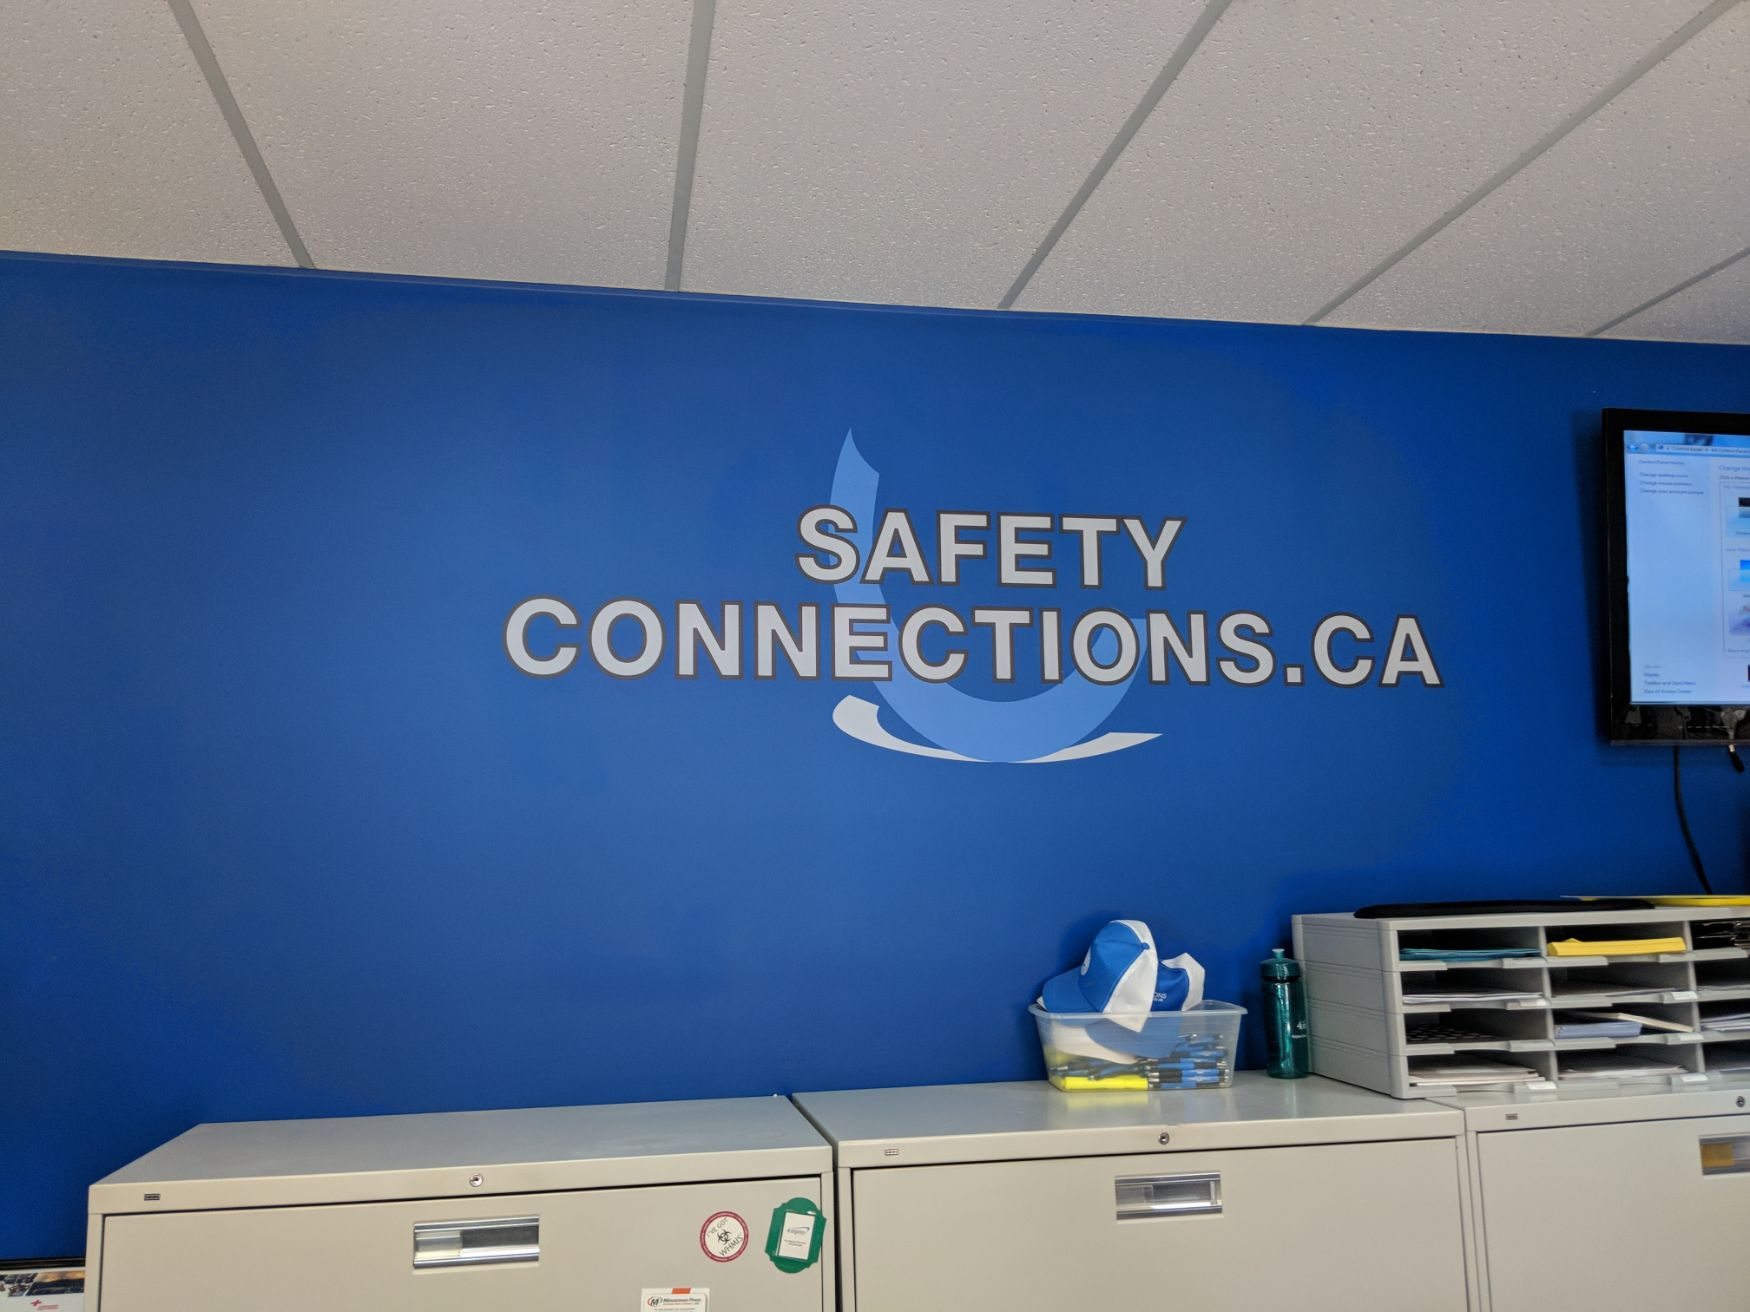 Safety connections signage